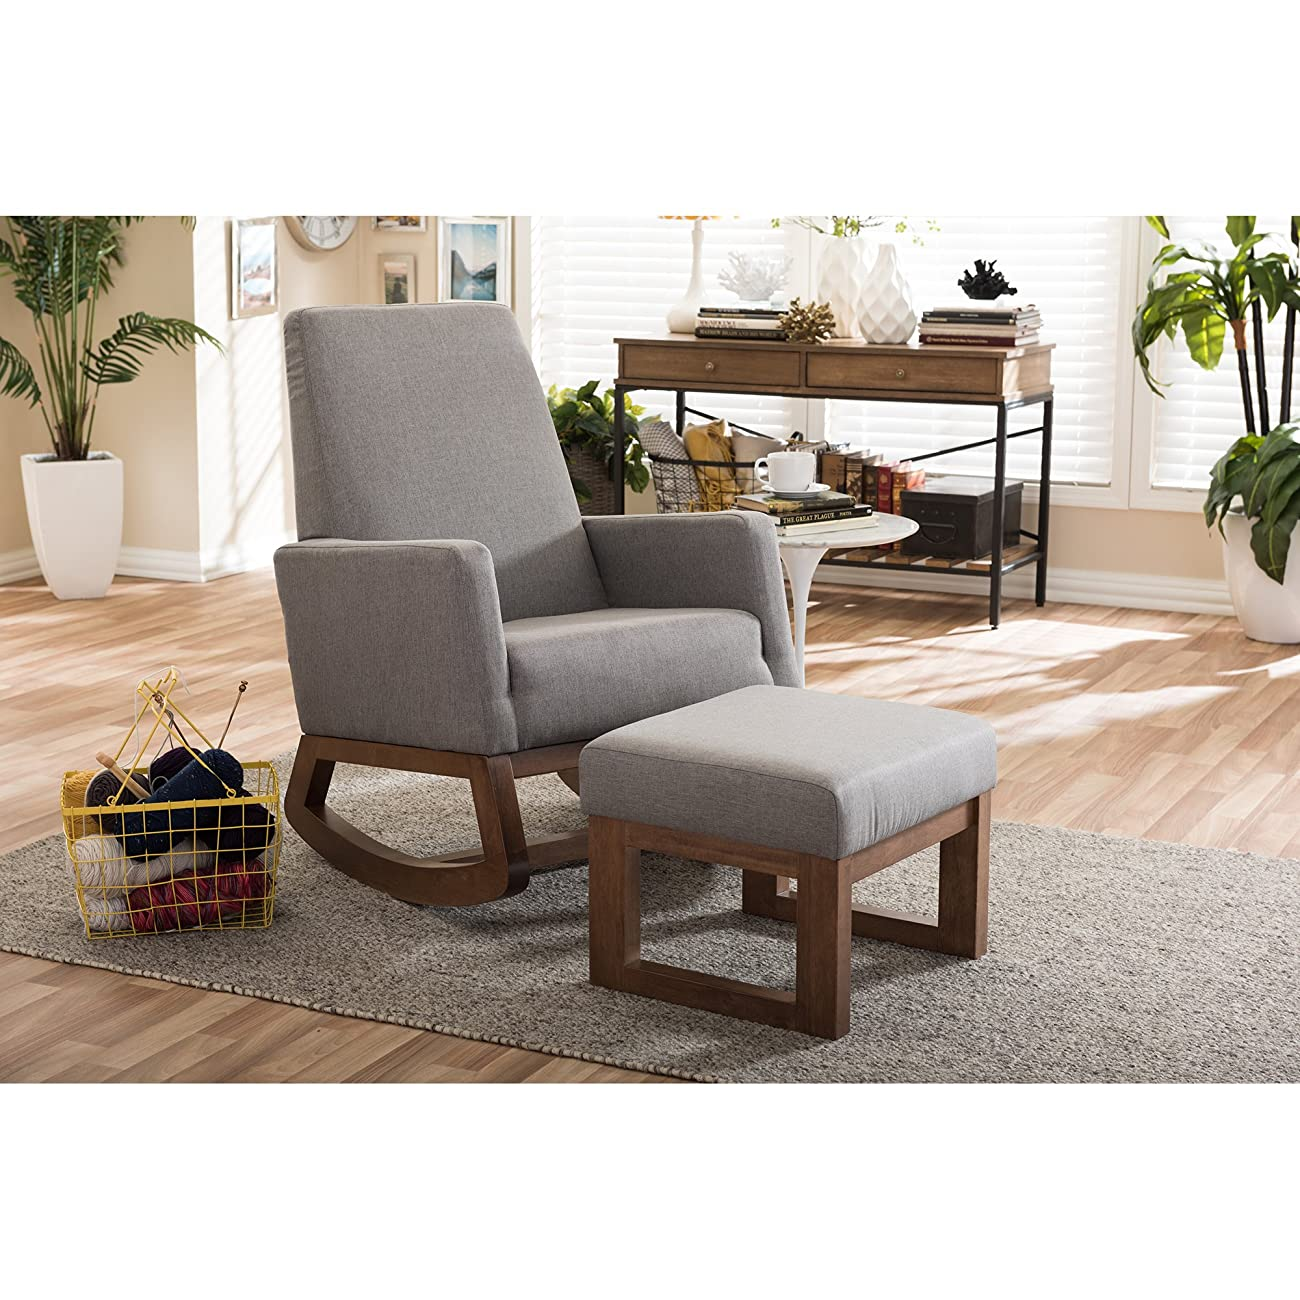 Baxton Studio Yashiya Mid Century Retro Modern Fabric Upholstered Rocking Chair, Grey 6